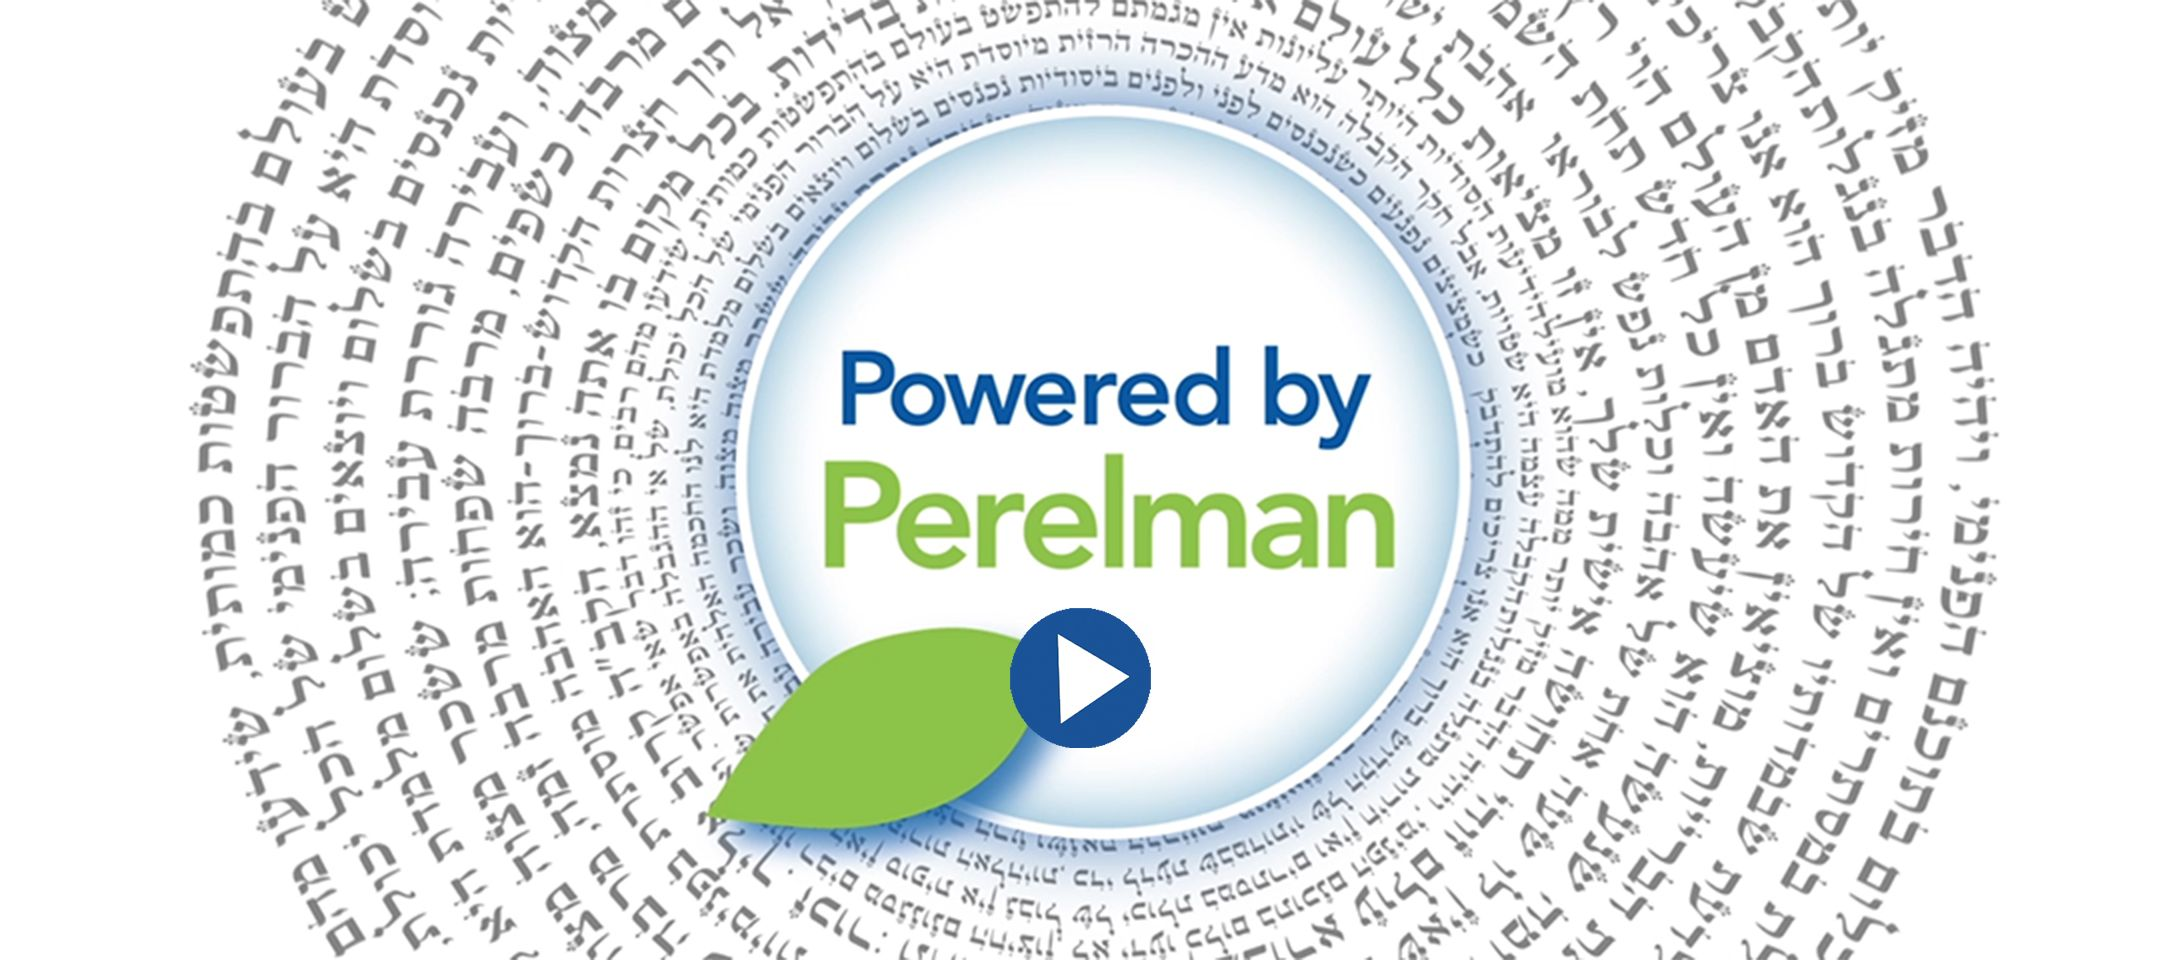 Powered by Perelman